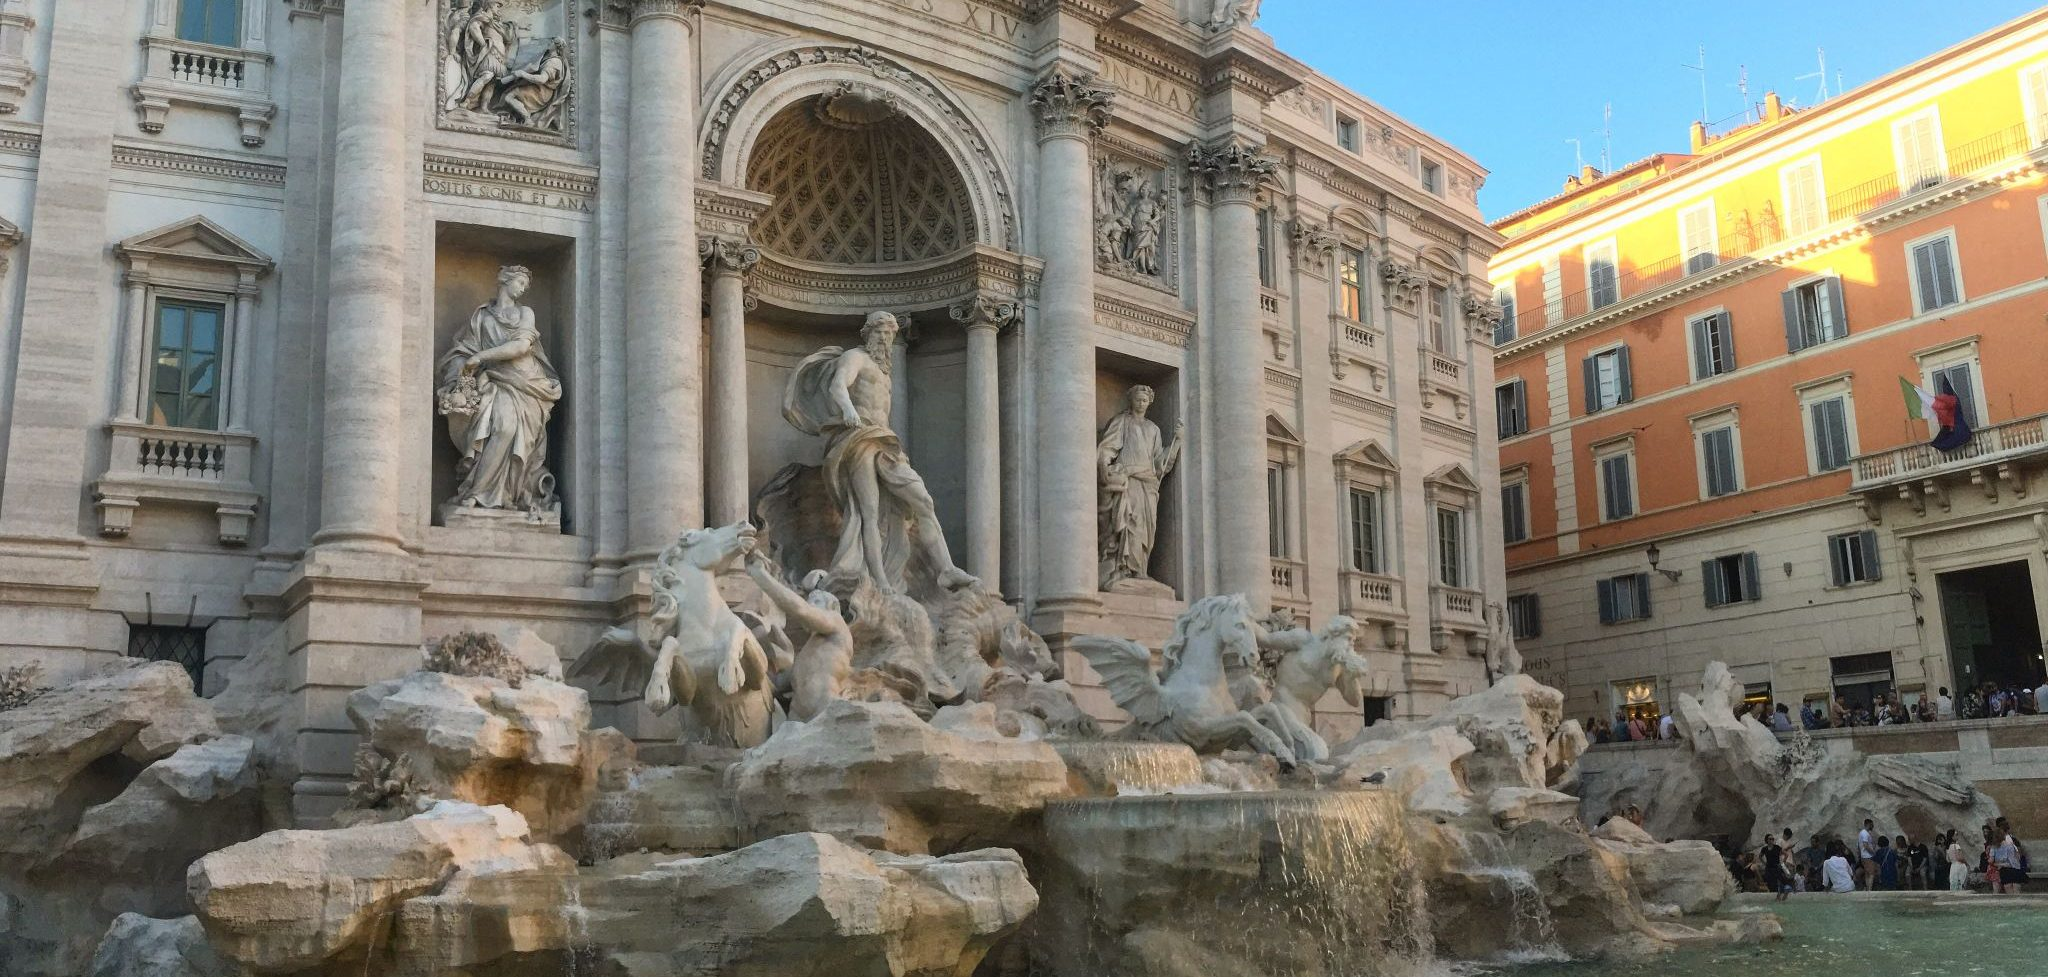 8 hours In Rome, Italy